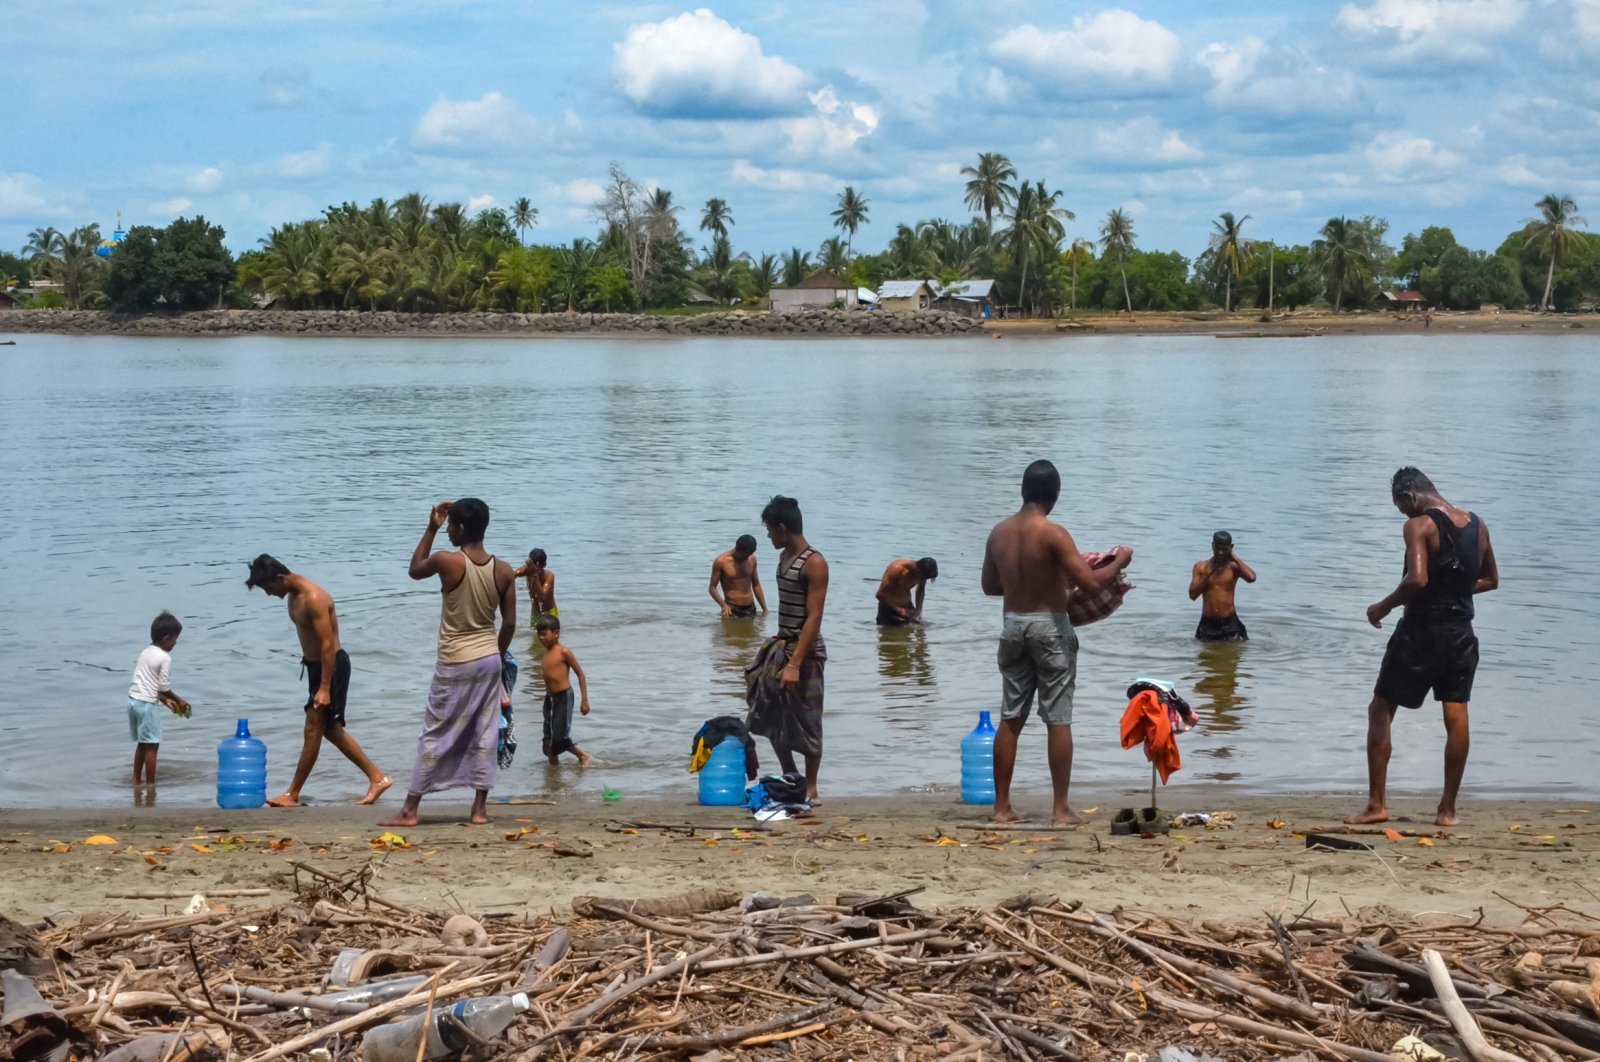 Rohingya refugees bathe at a beach in Pulau Idaman, a small island off the coast of East Aceh in northern Sumatra on June 5, 2021, a day after about 80 Rohingya landed their vessel off the Indonesian coast. (AFP Photo)